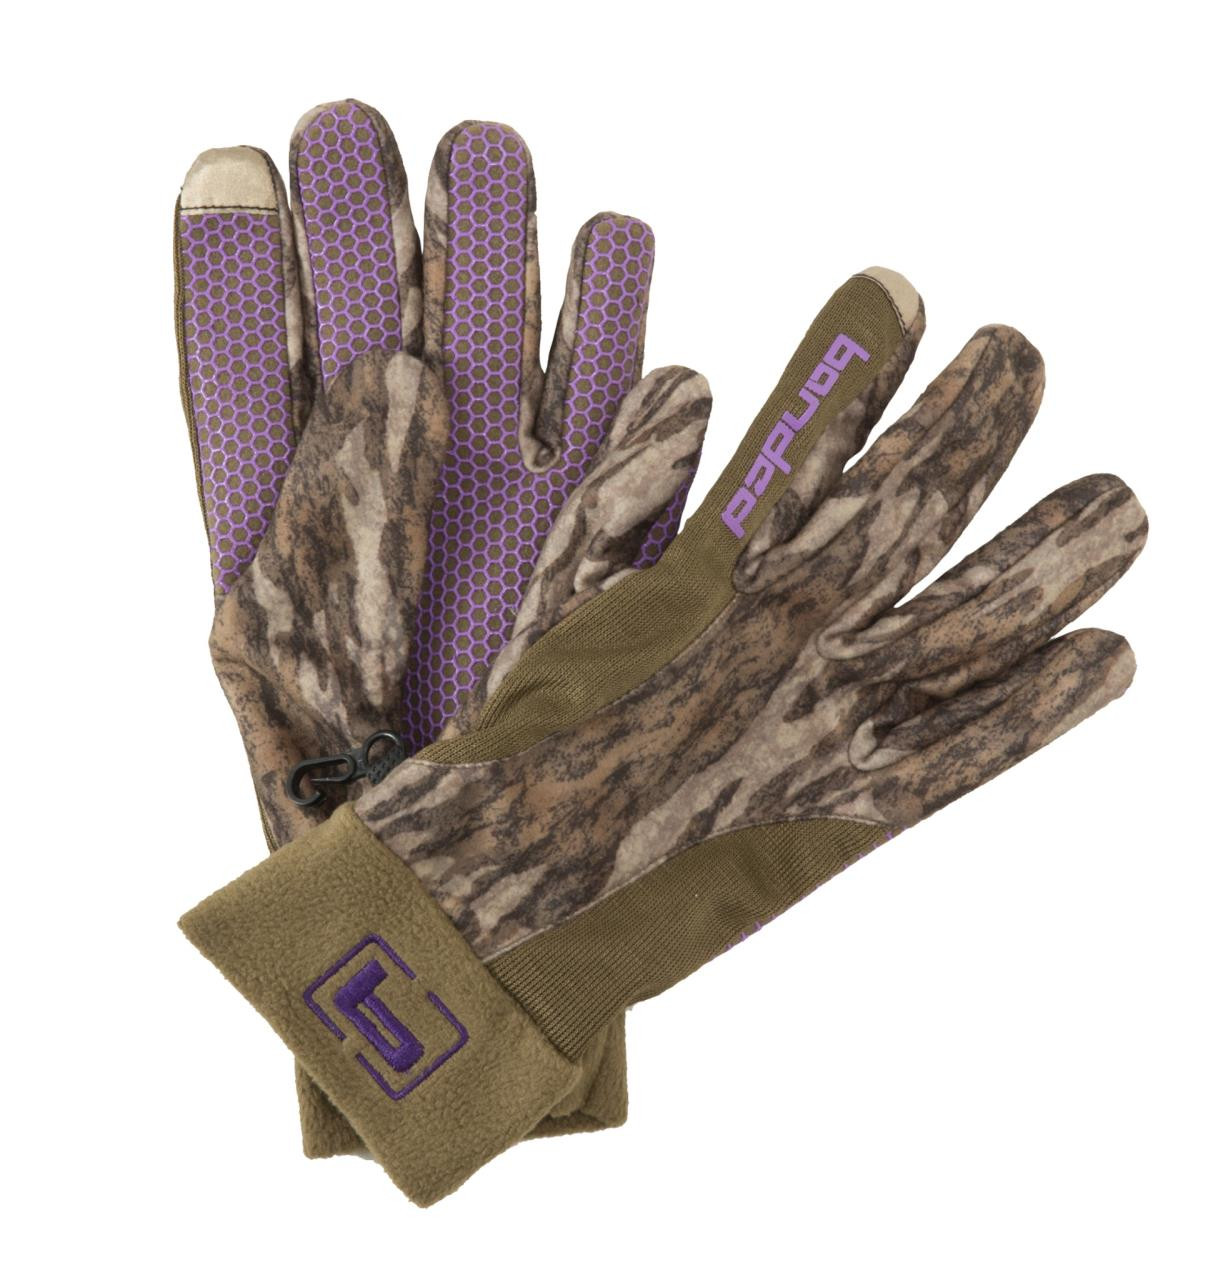 Banded Women's Fleece Glove - 848222021577